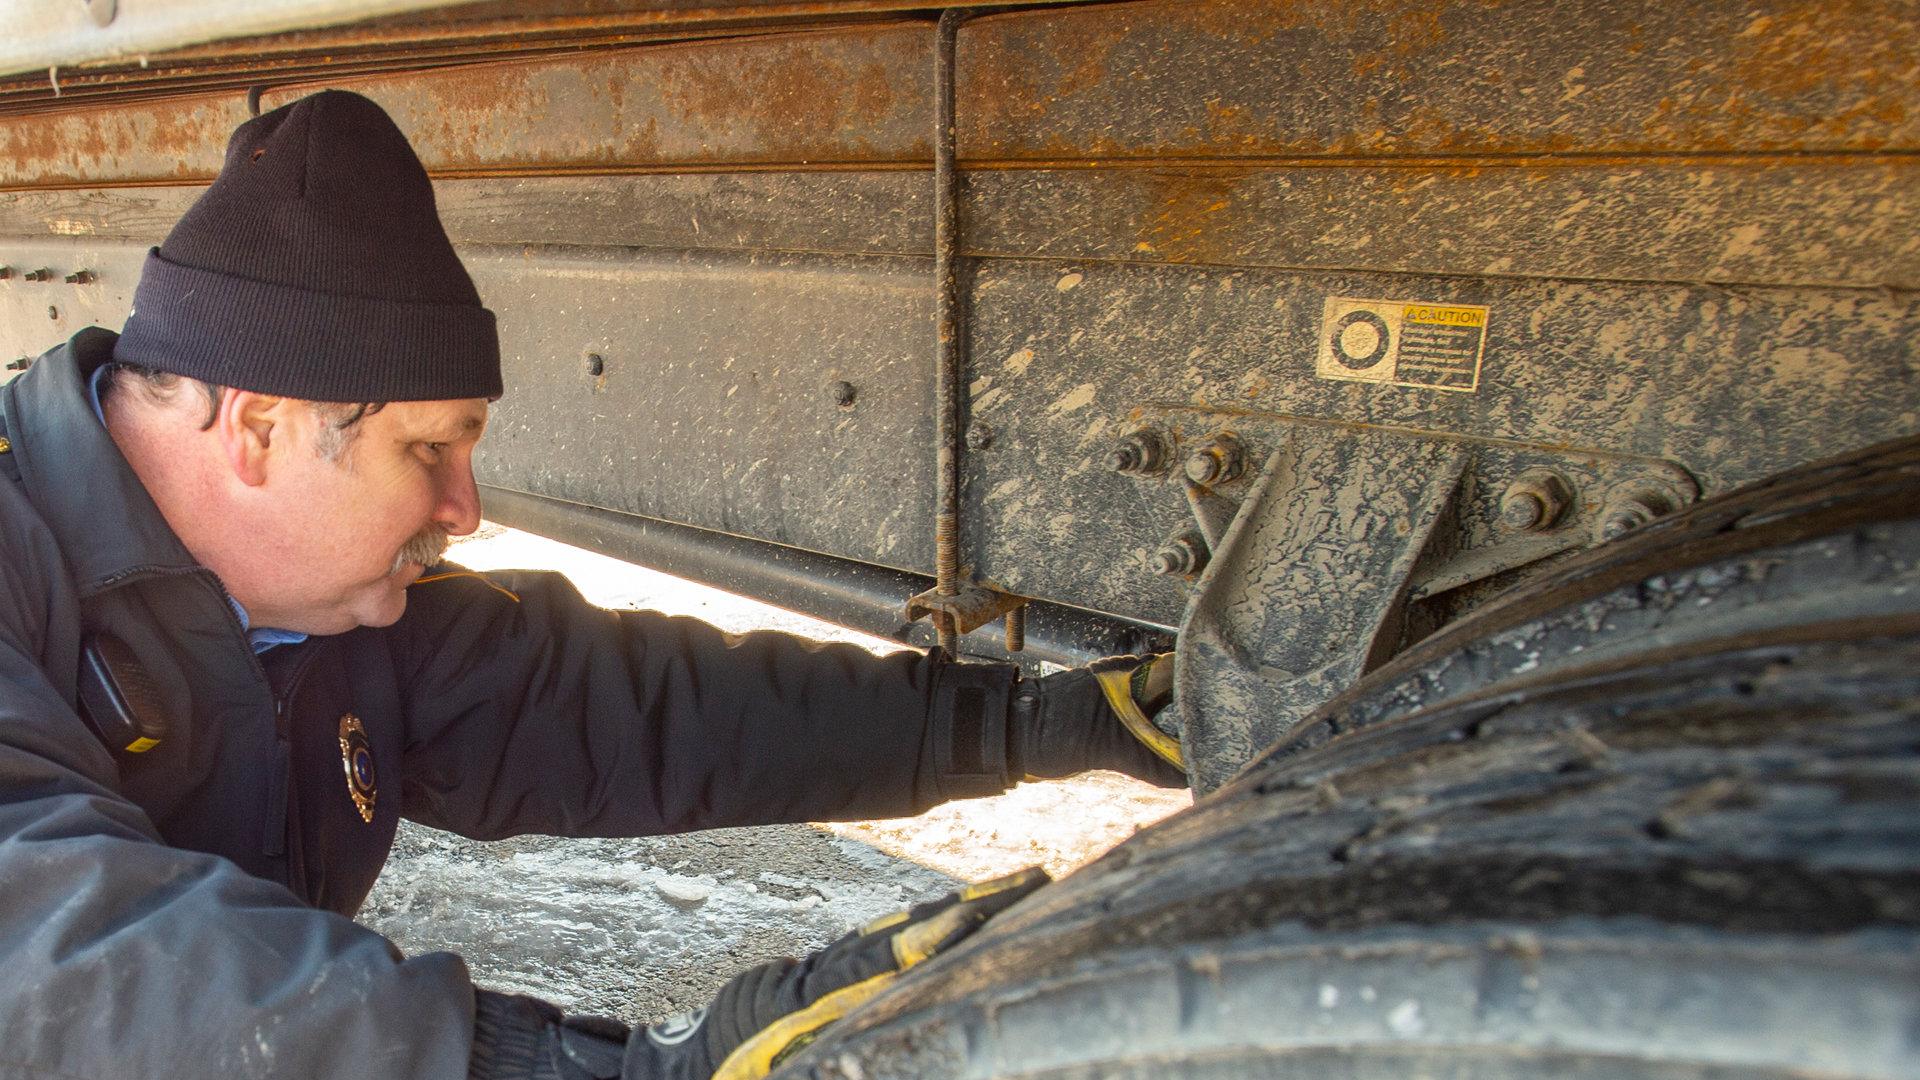 Safe and Smart Non-CDL Driver Training for Experienced Drivers: Roadside Inspections